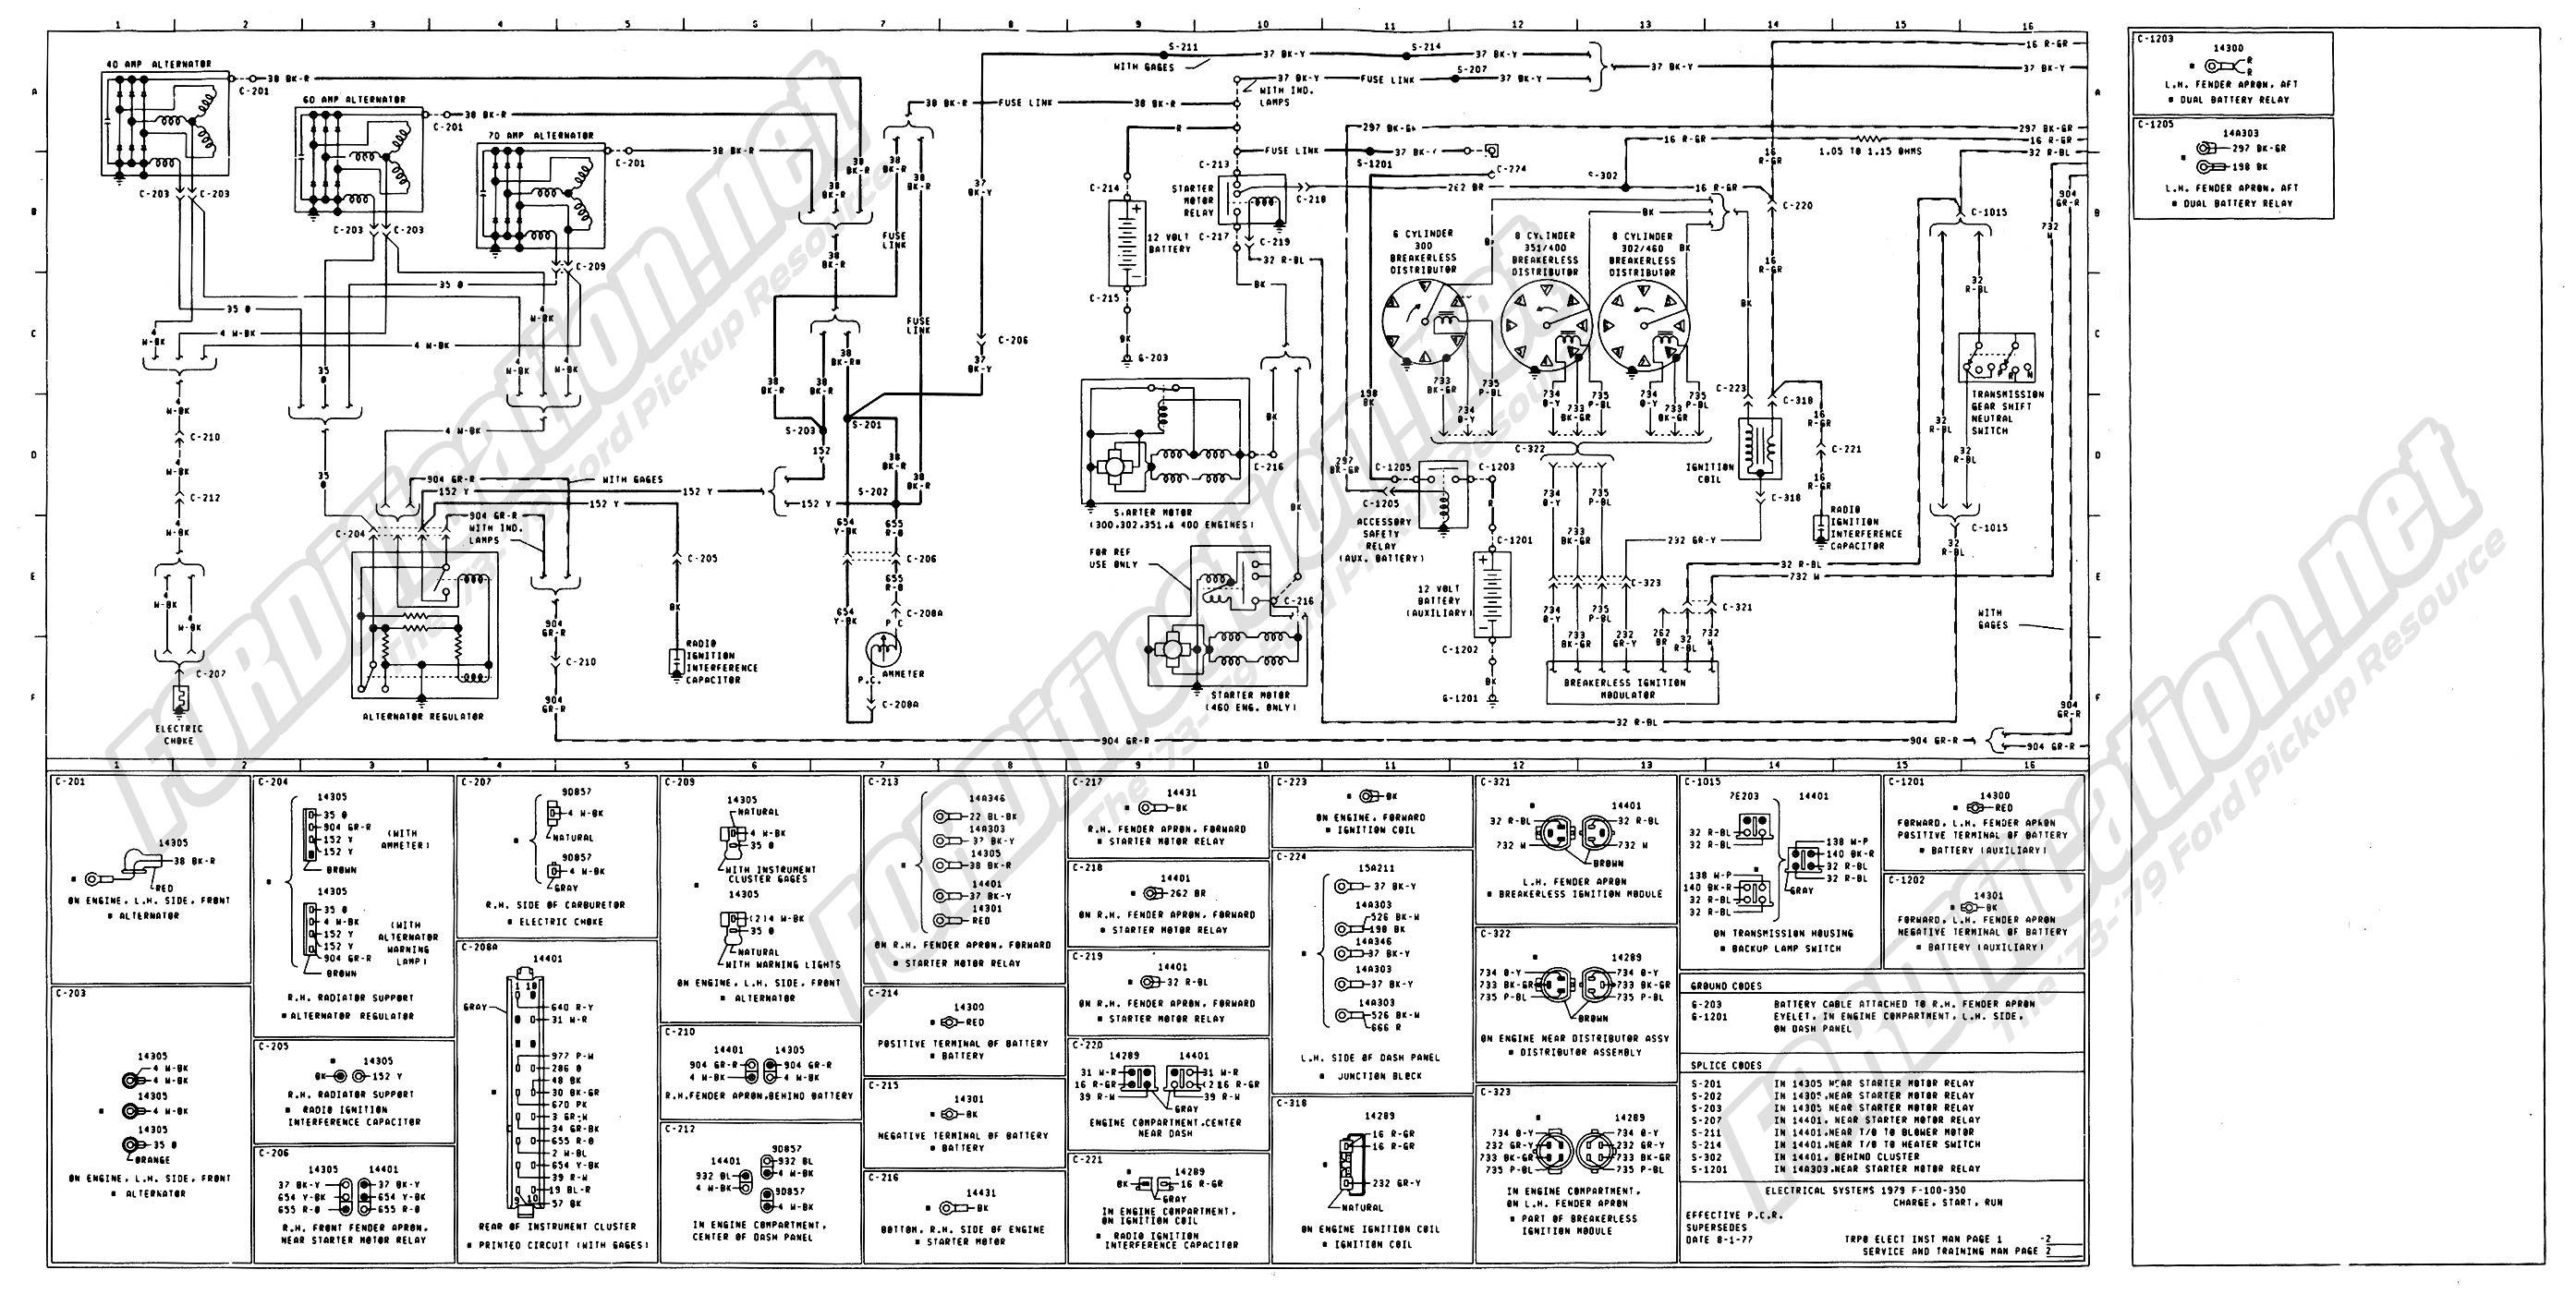 Ford Truck Radio Wiring Diagrams For 95 - Schema Wiring Diagrams on